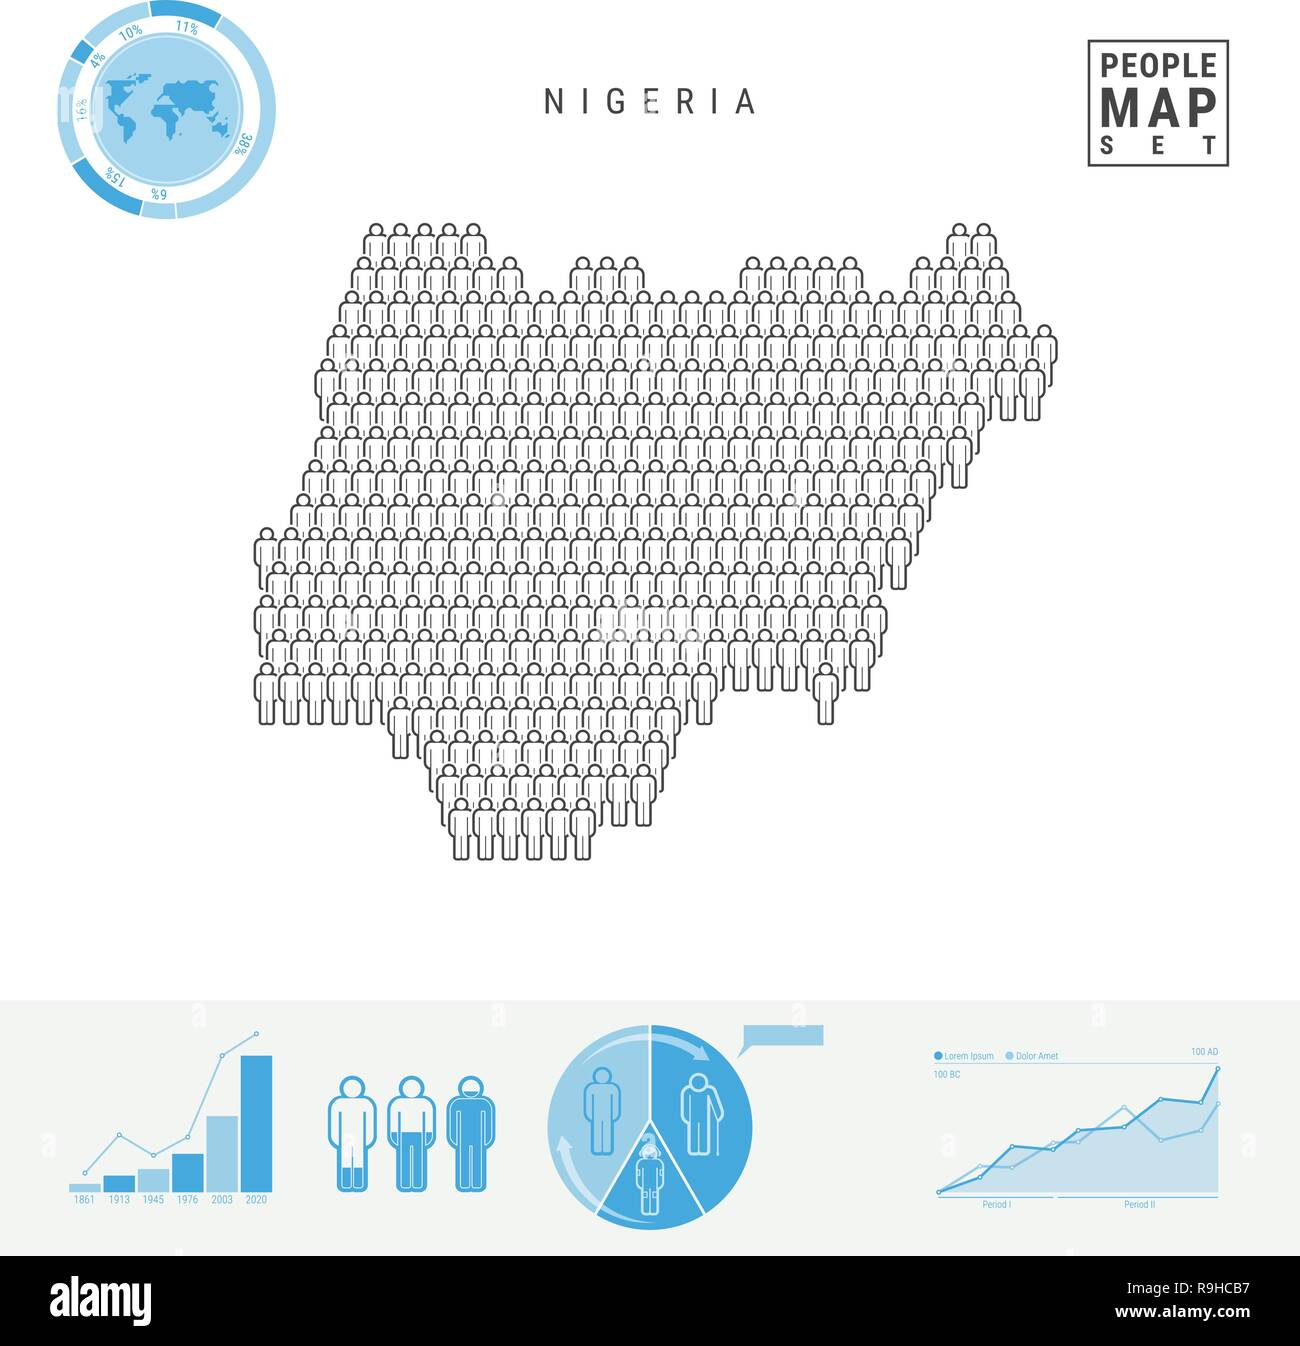 Nigeria People Icon Map. People Crowd in the Shape of a Map of Nigeria. Stylized Silhouette of Nigeria. Population Growth and Aging Infographic Elemen - Stock Vector